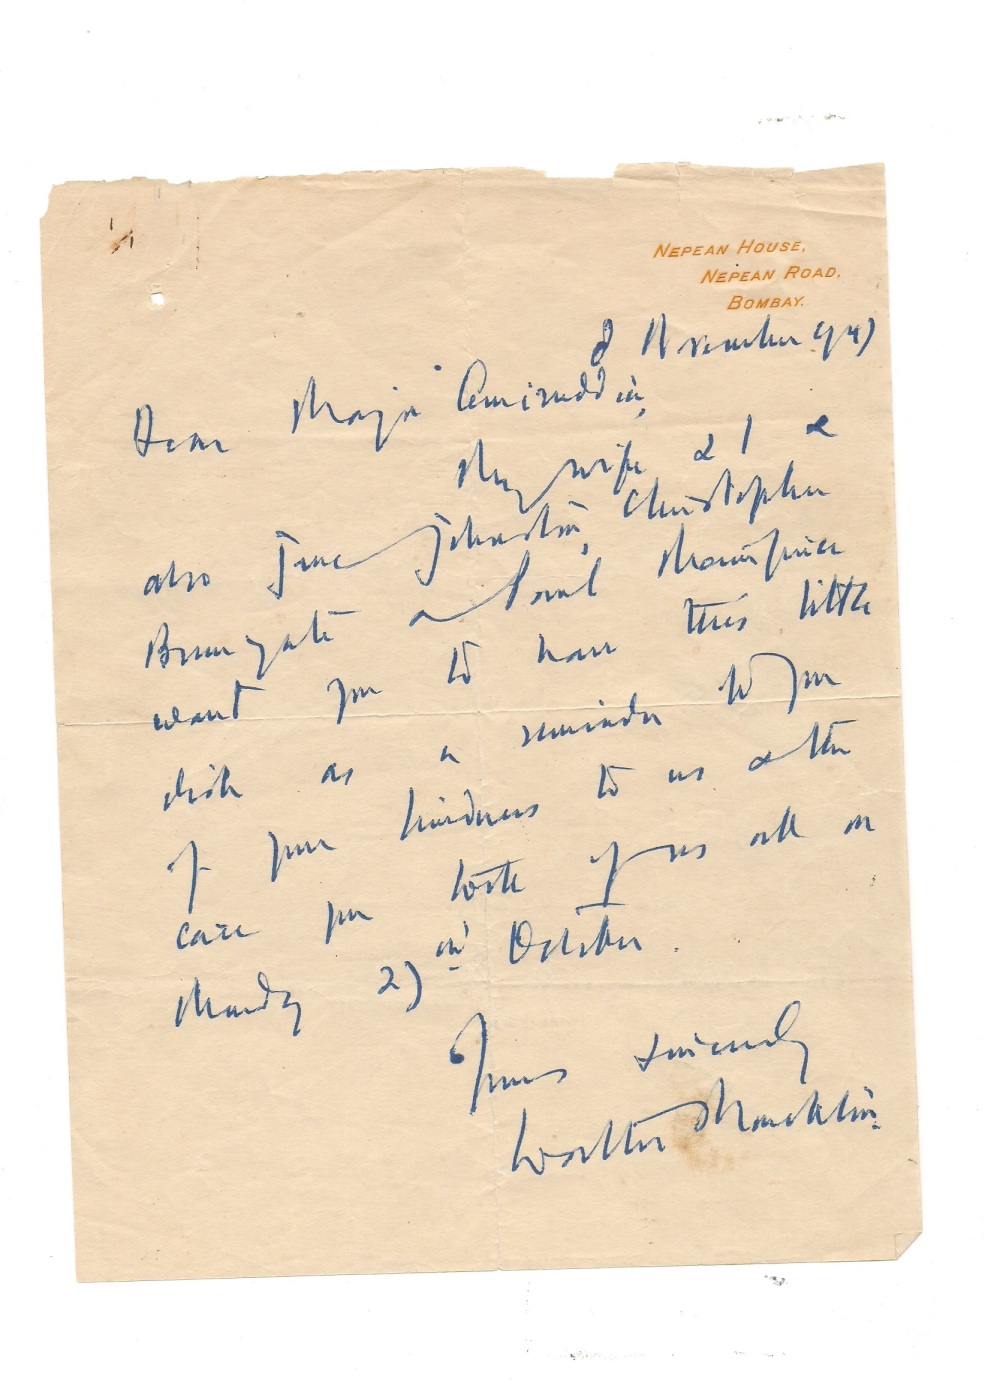 A hand written letter by Sir Walter Monckton, Q.C., Constitutional Adviser to H.E.H. the Nizam of Hyderabad